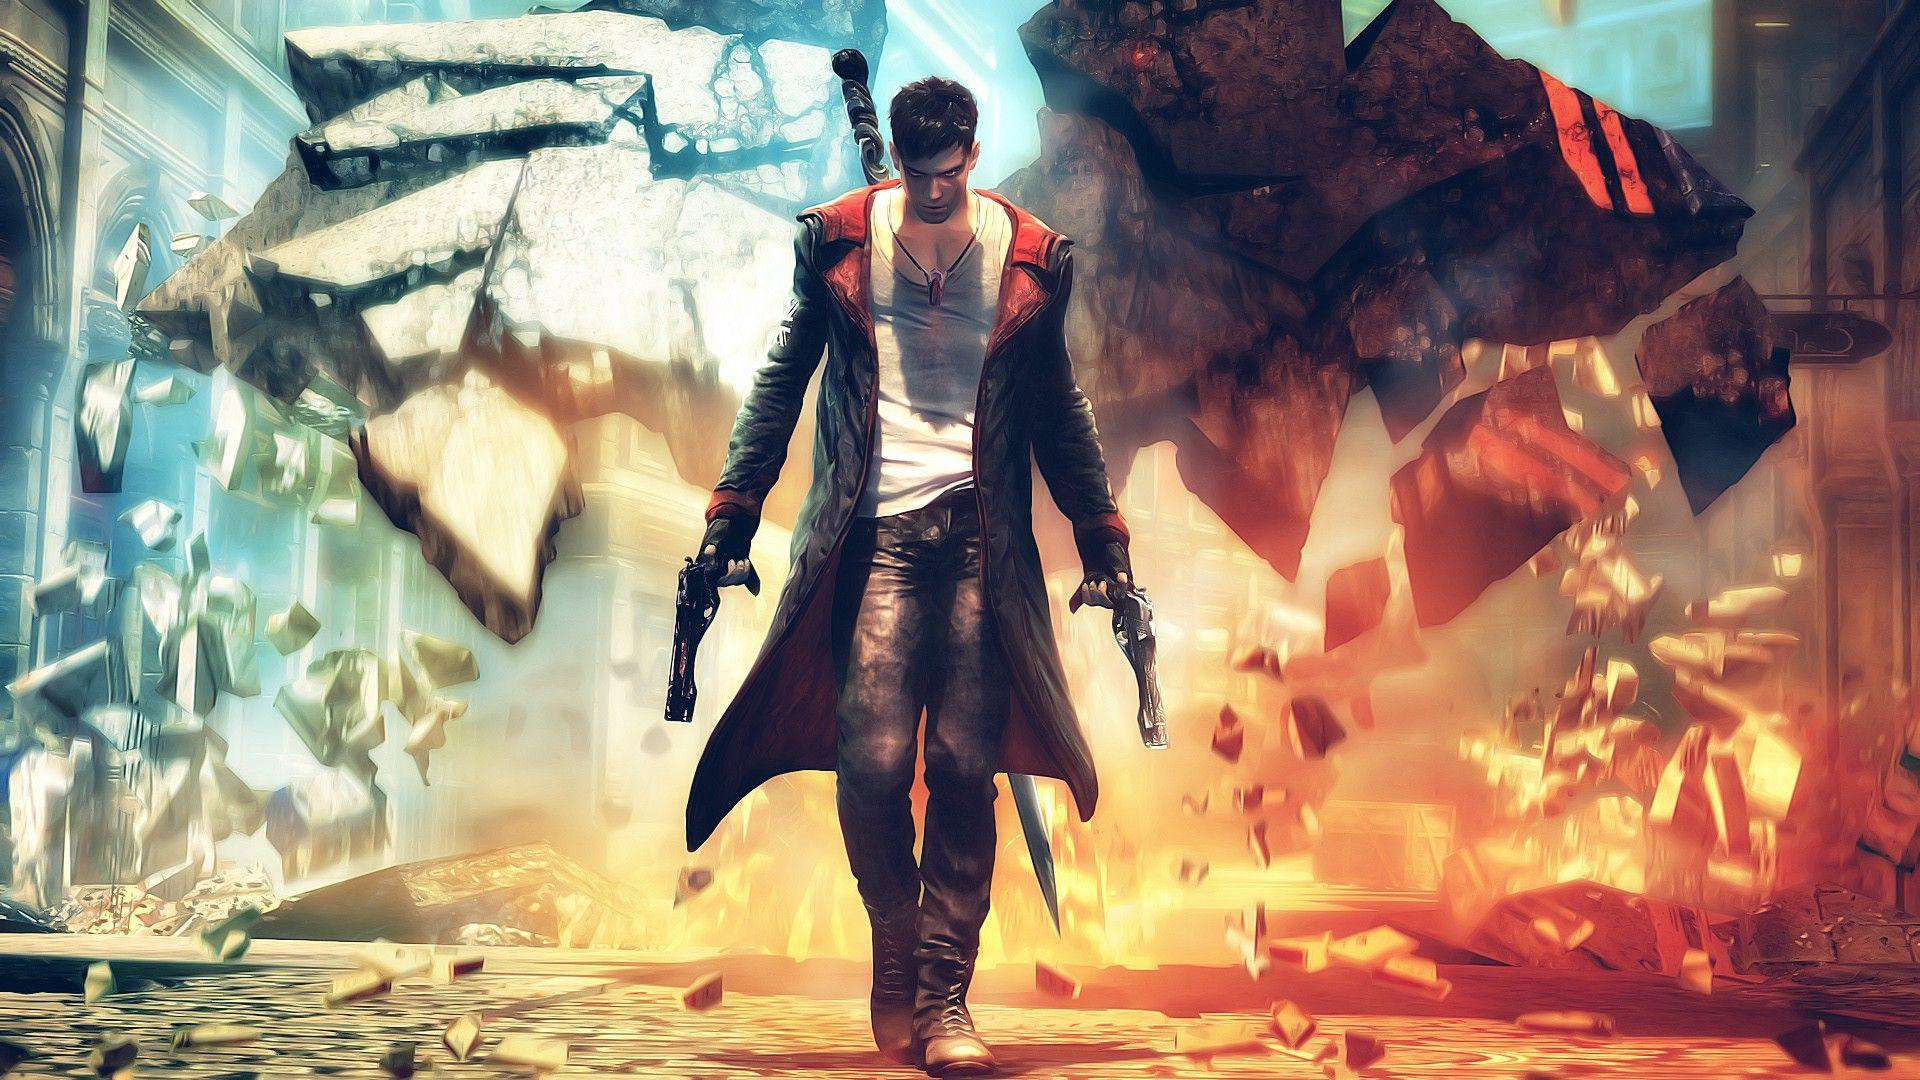 dante dmc devil may cry 1080P wallpaper, hd walepaper, free wallpaper